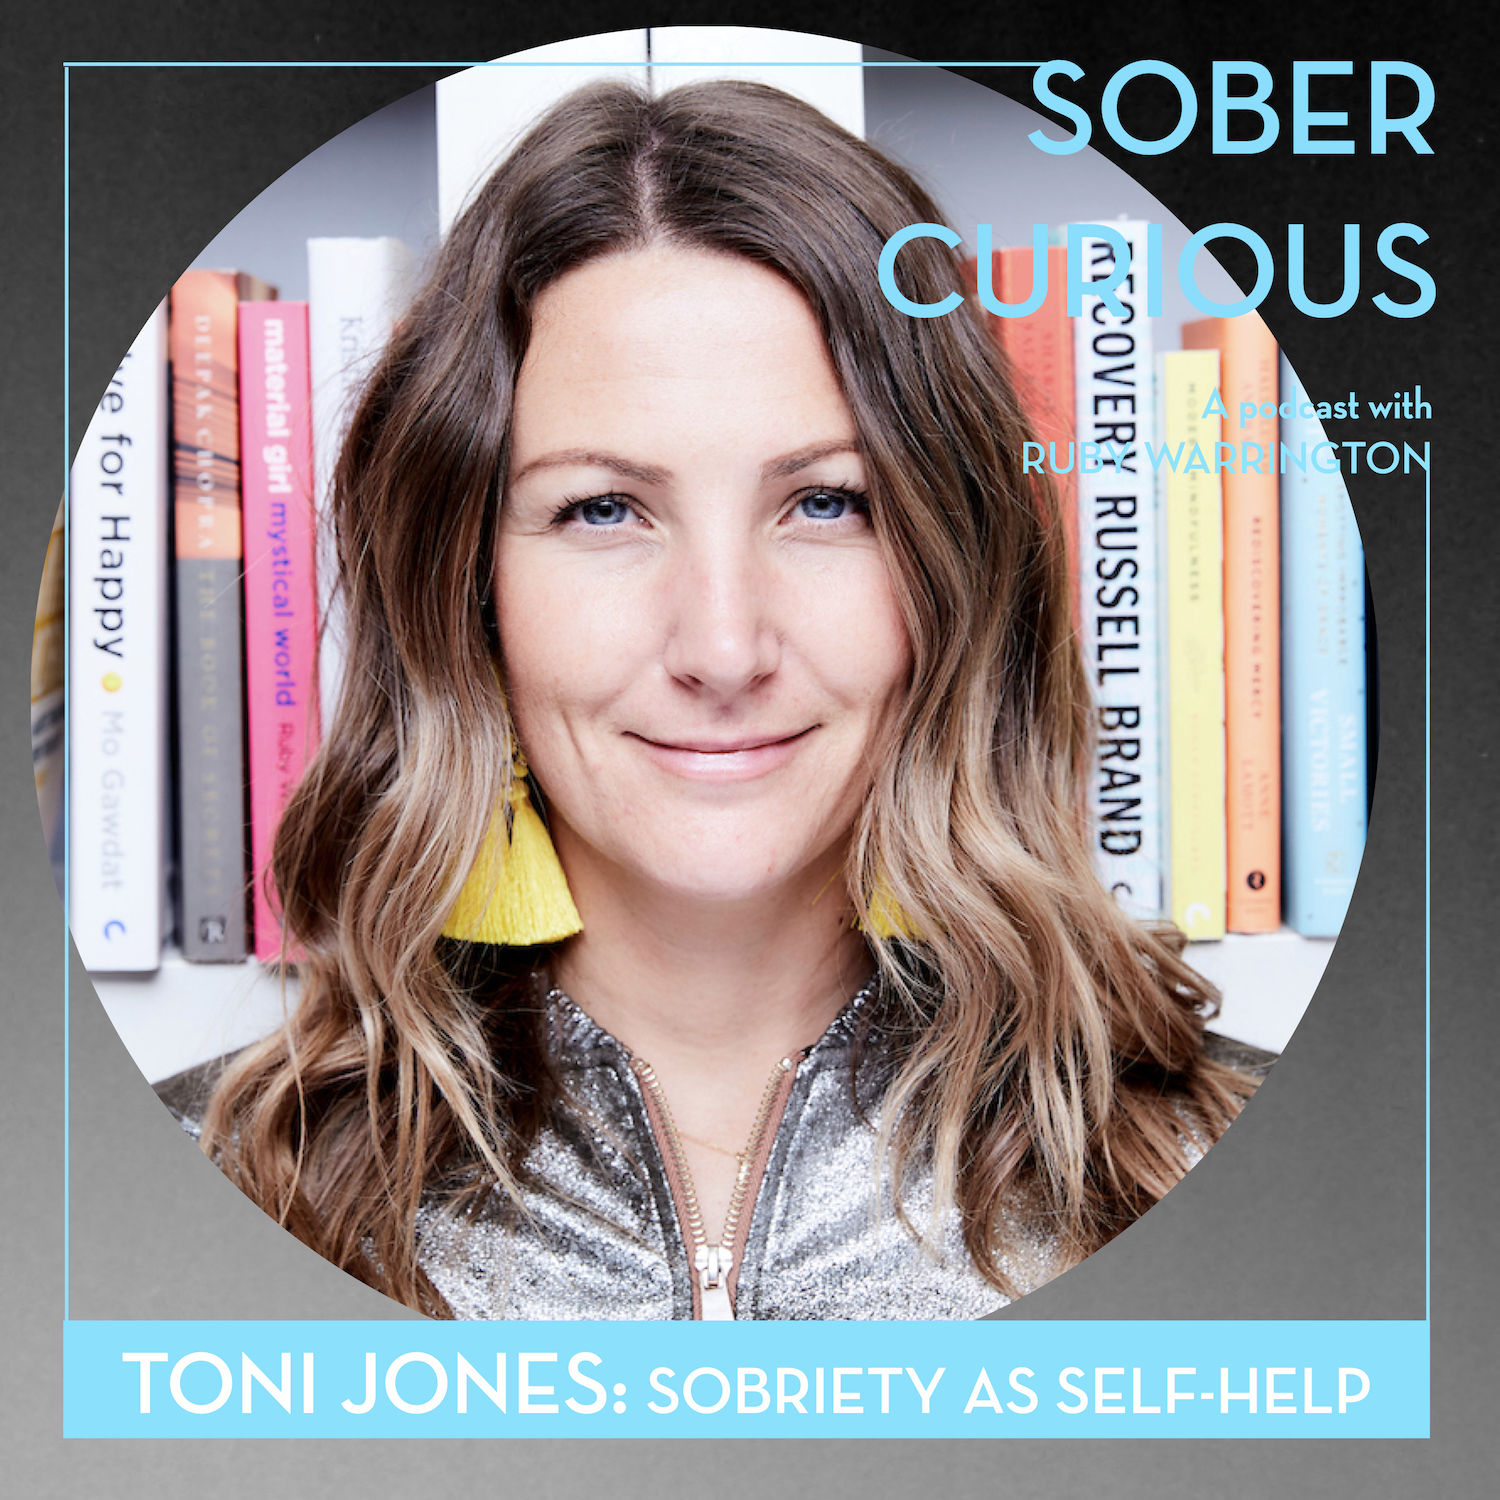 Toni Jones sober curious podcast self-help ruby warrington